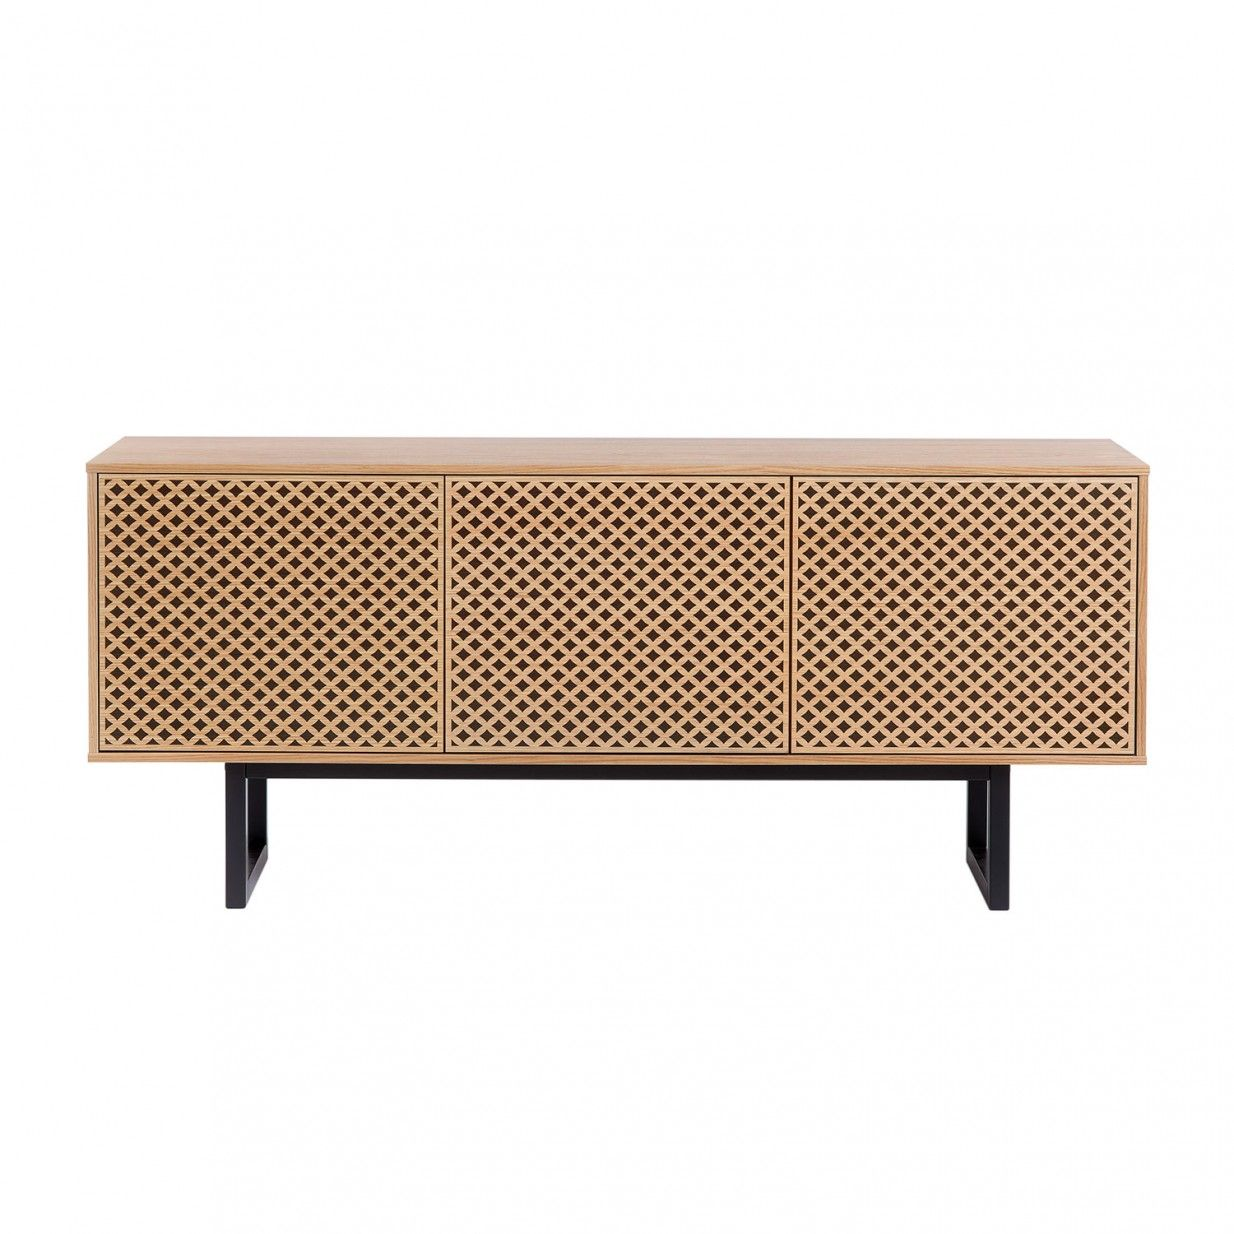 Mora Diamond Sideboard Woodman For The Home Pinterest Sideboard Furniture Und Room